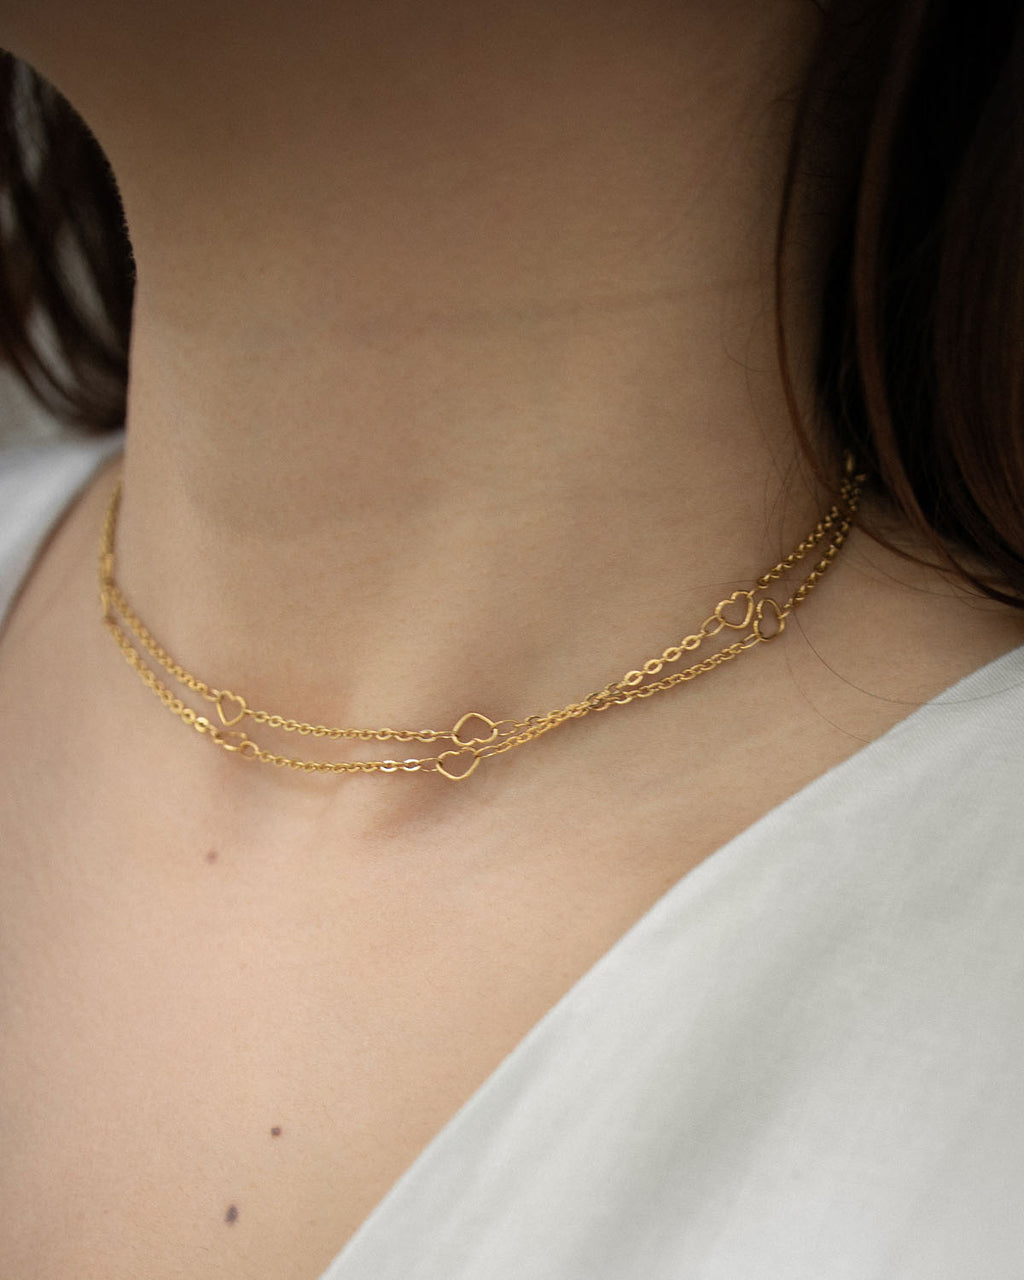 Long gold chain looped twice as a chic choker - Adore chain by The Hexad